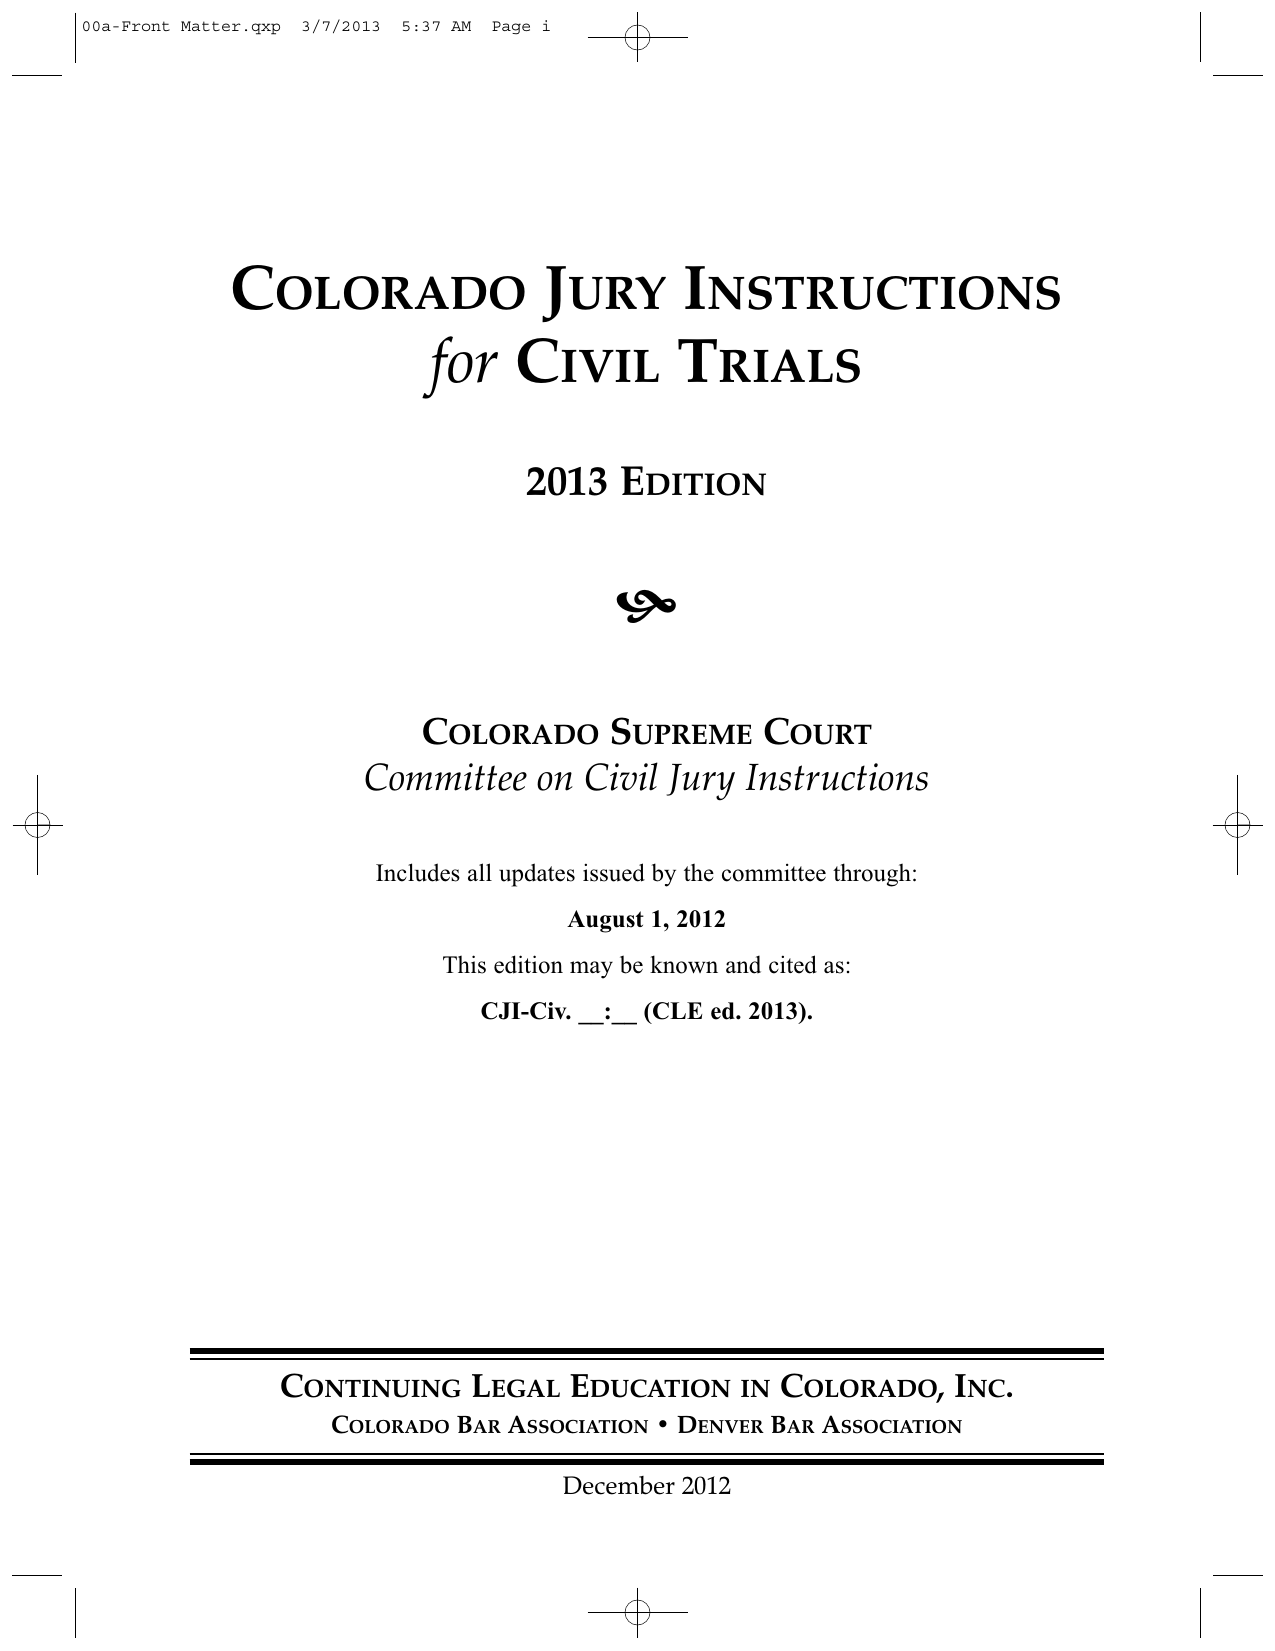 Colorado Jury Instructions for Civil Trials, 2013 Edition